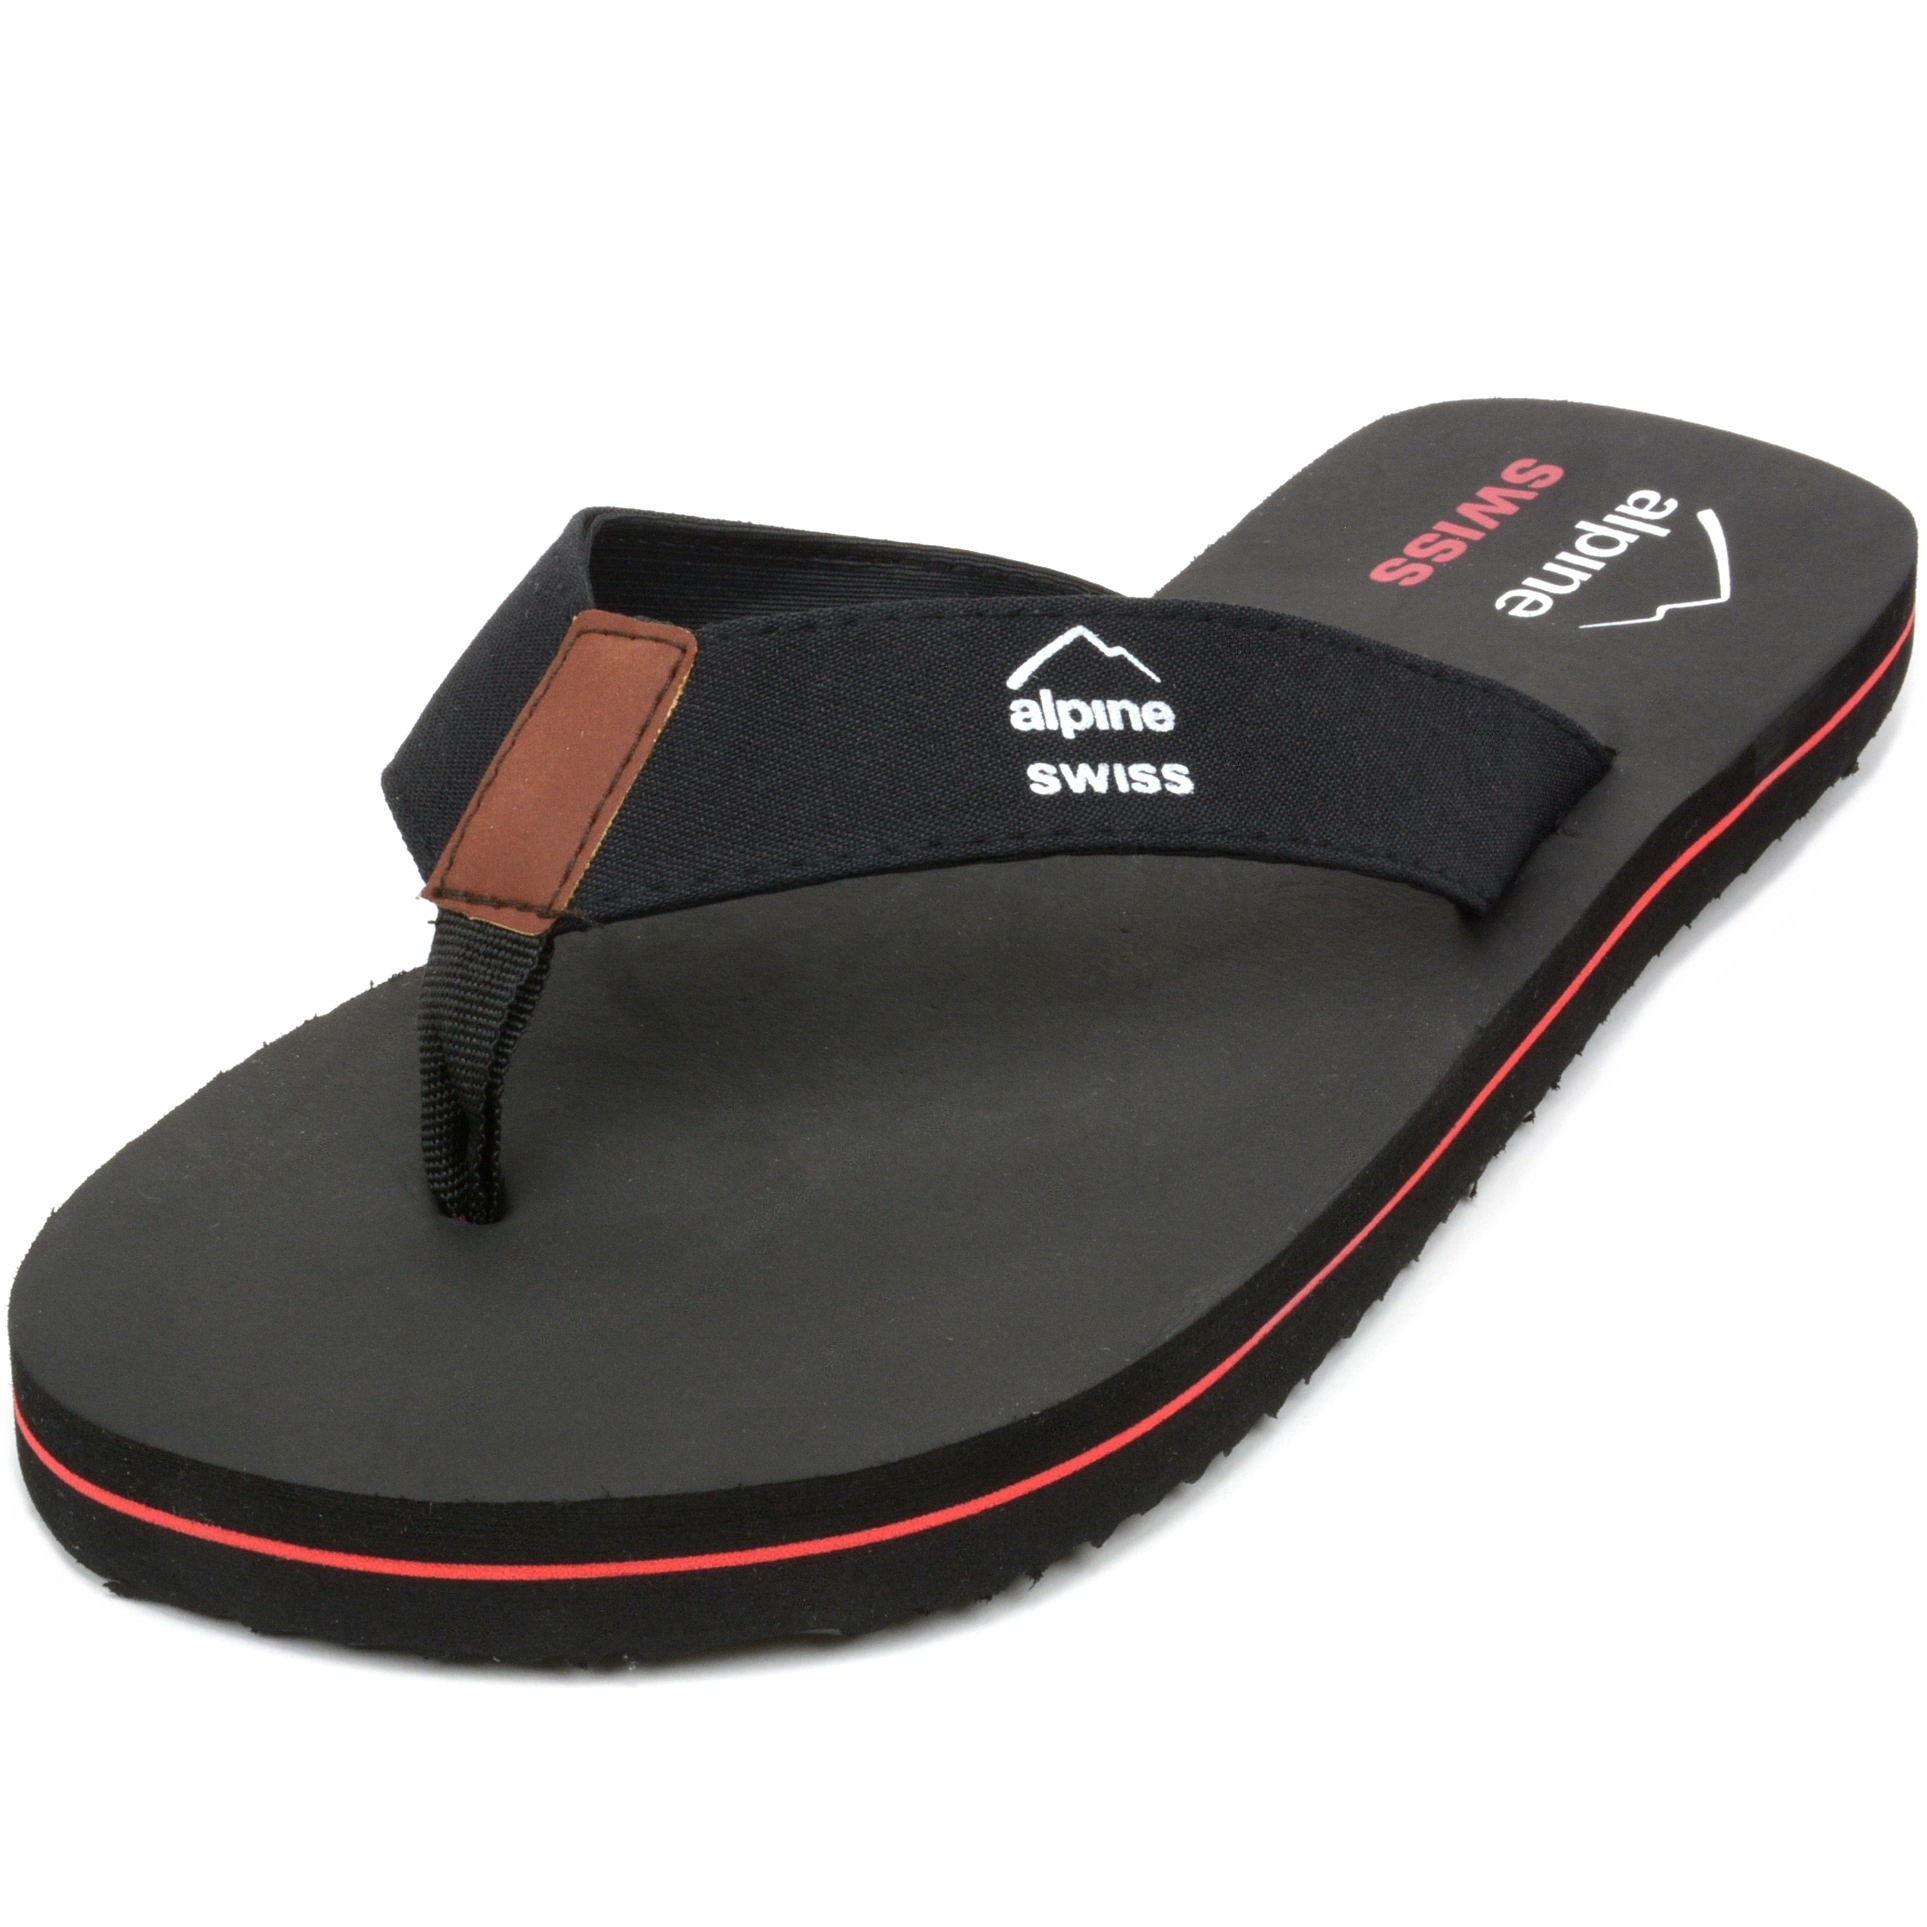 Are you looking for the coolest Gay Mens Flip Flops in the world? Look no further! Find s of designs on our comfortable flip flops available for men, women, & children in all sizes and colors.